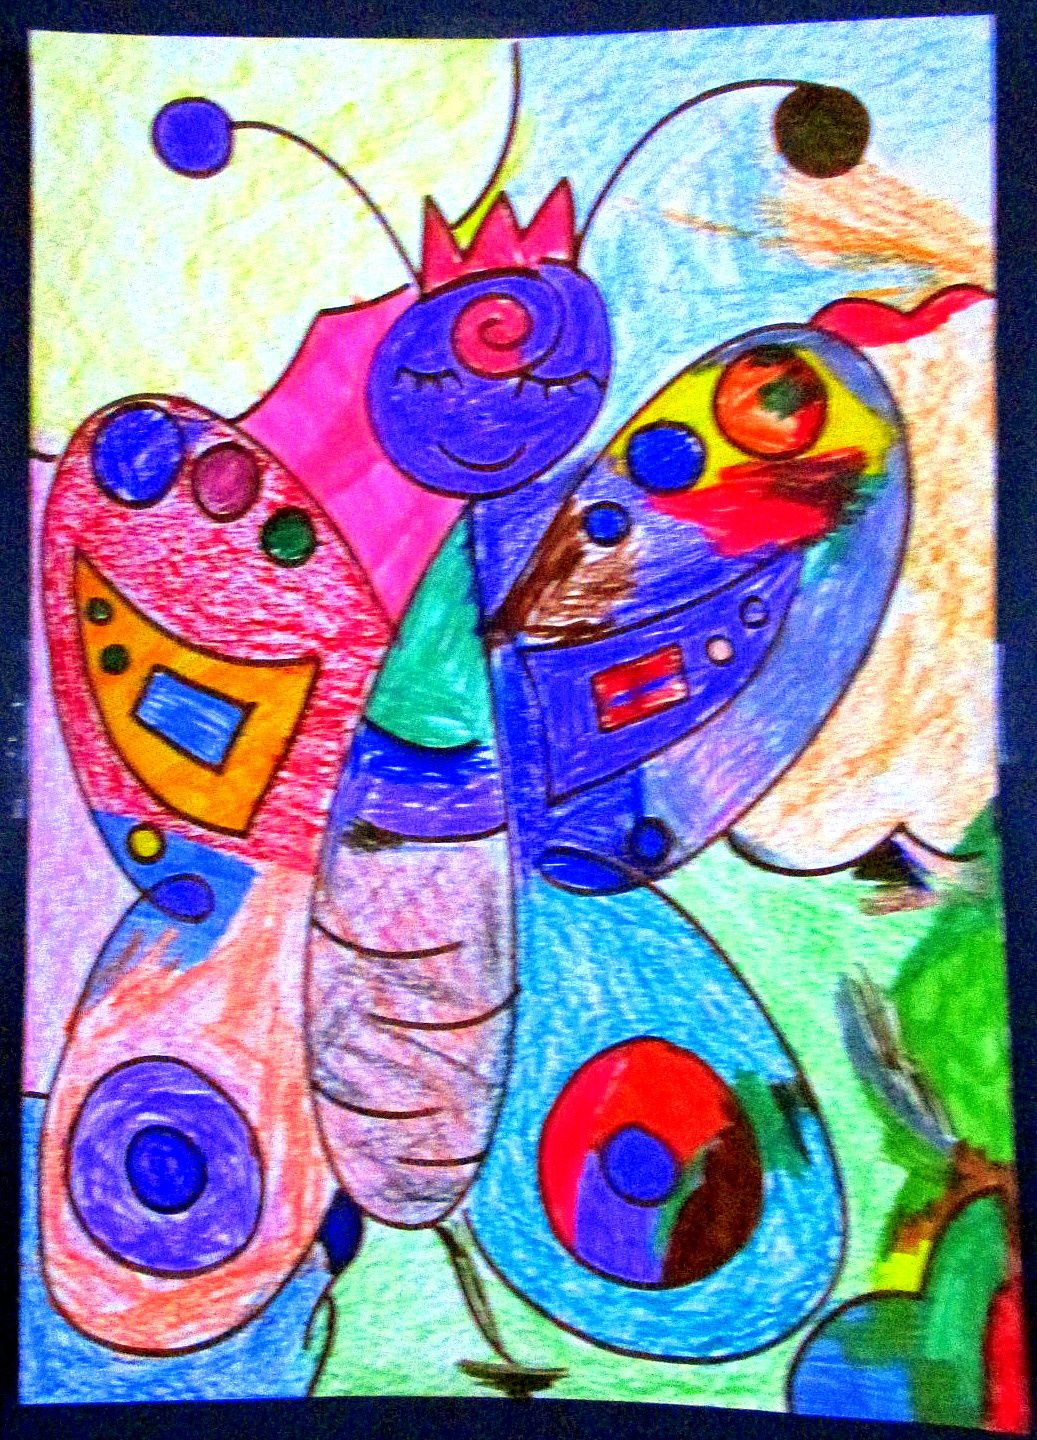 ~ Fresques collectives ~ Butterfly ~ Birdy ~ Mushroom ~